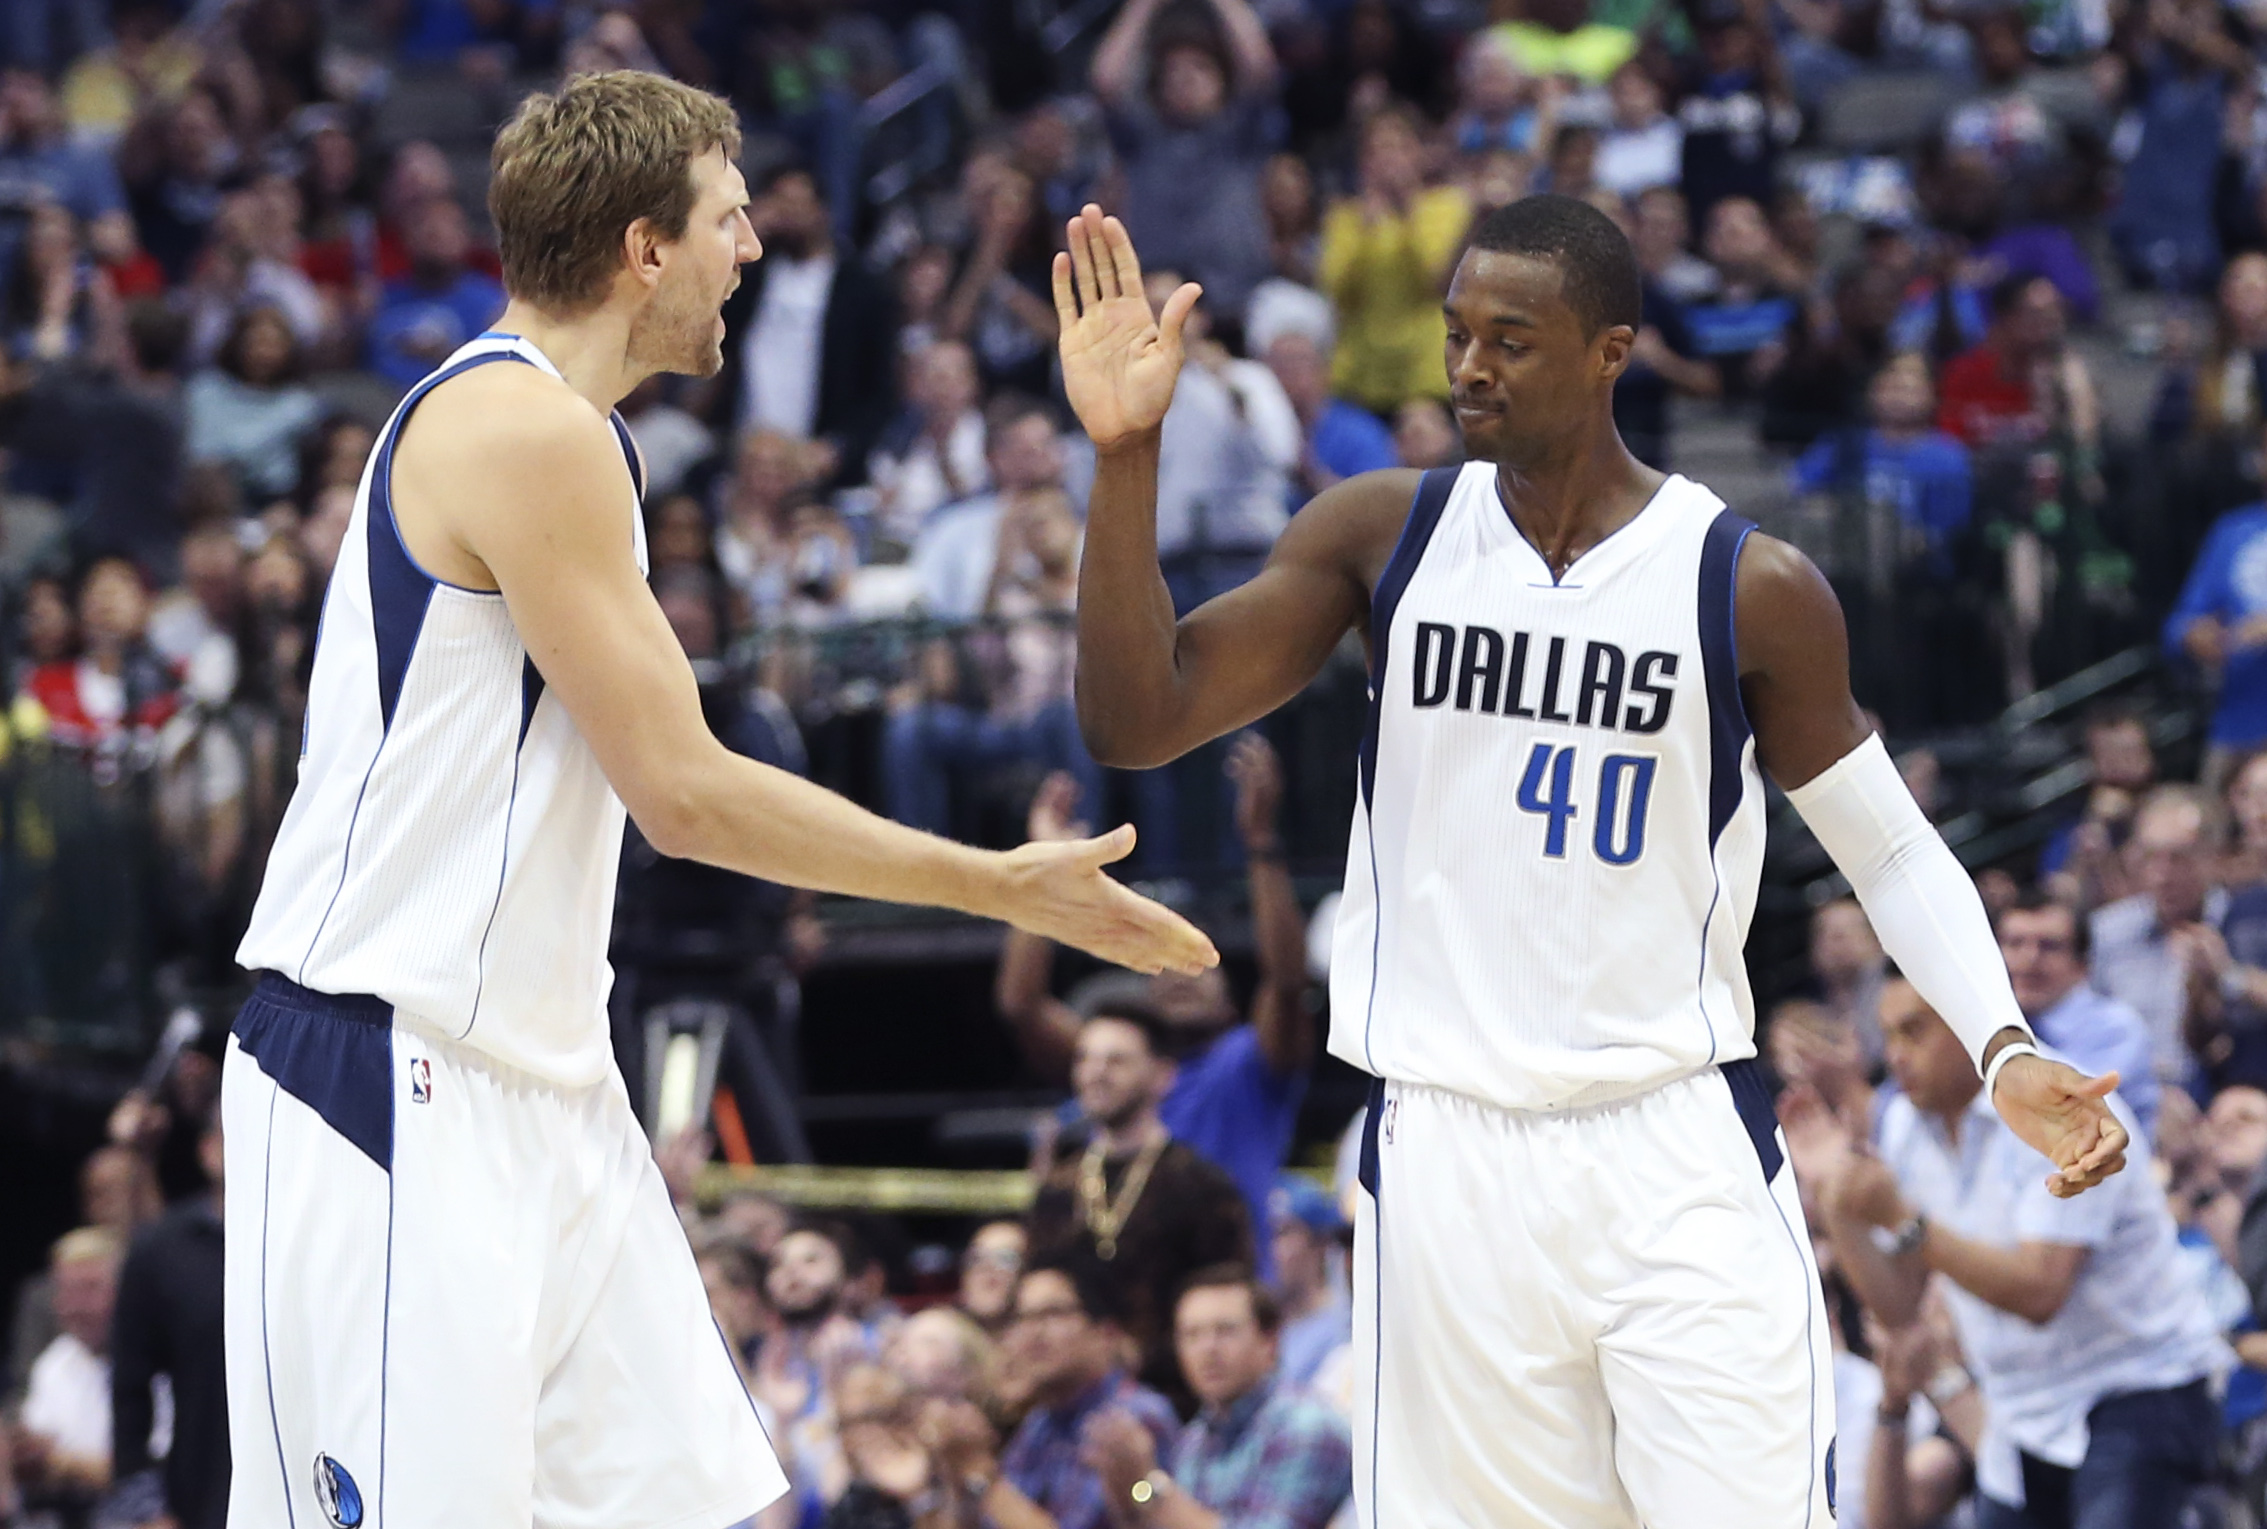 9967336-nba-los-angeles-clippers-at-dallas-mavericks